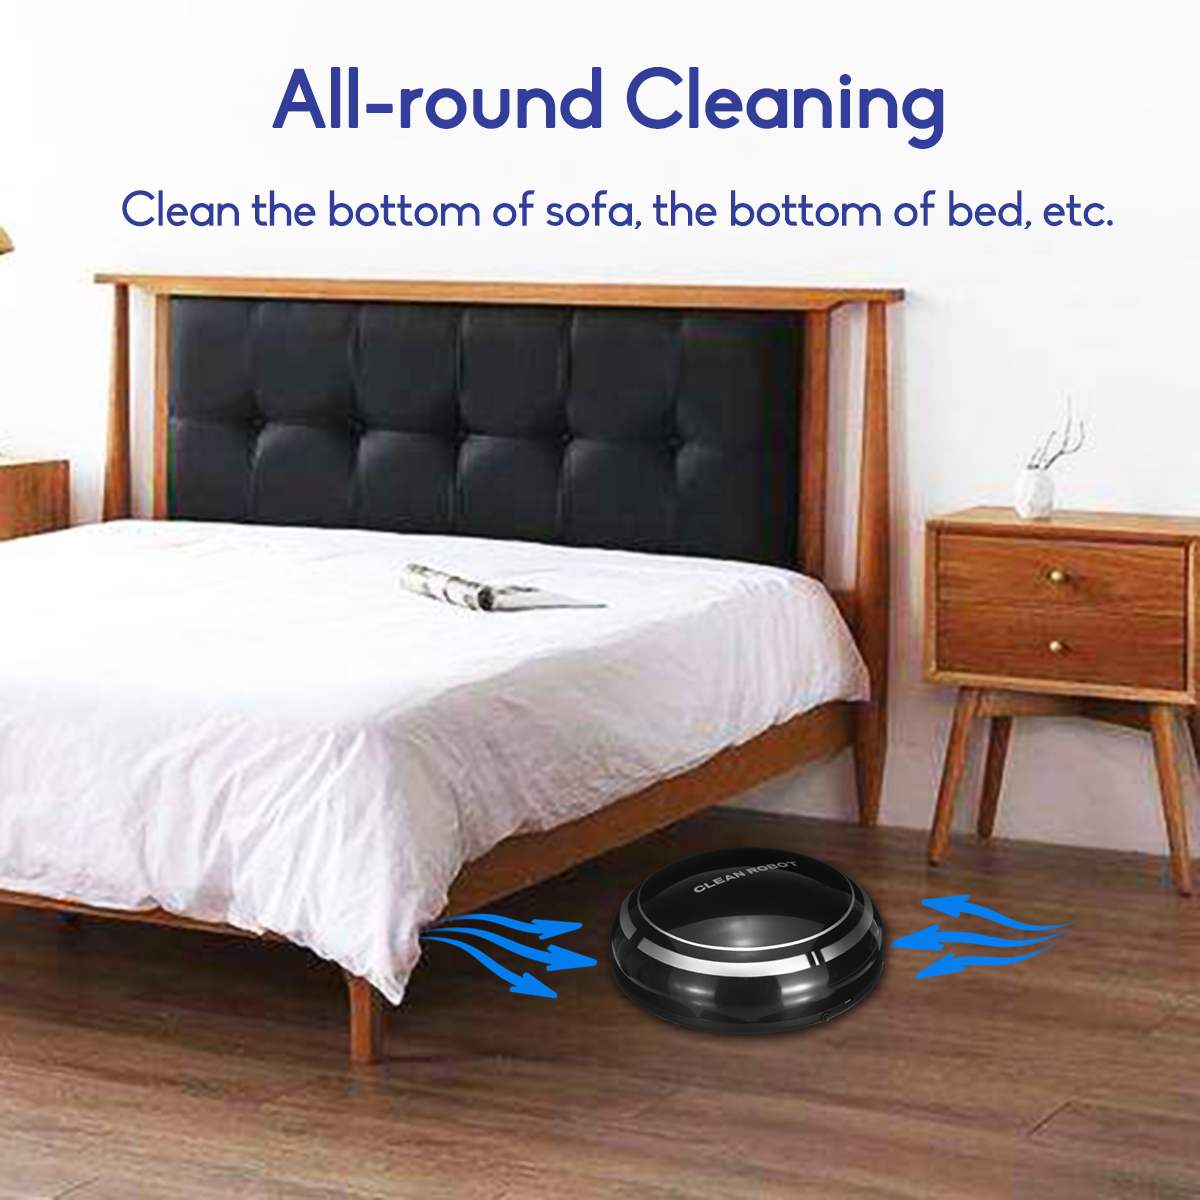 Hfa691aba9ee34be888e3e0ec16d3cc9fj Smart Automatic Robot Vacuum Cleaning Machine Intelligent Floor Sweeping Dust Catcher Carpet Cleaner For Home Automatic Cleaning